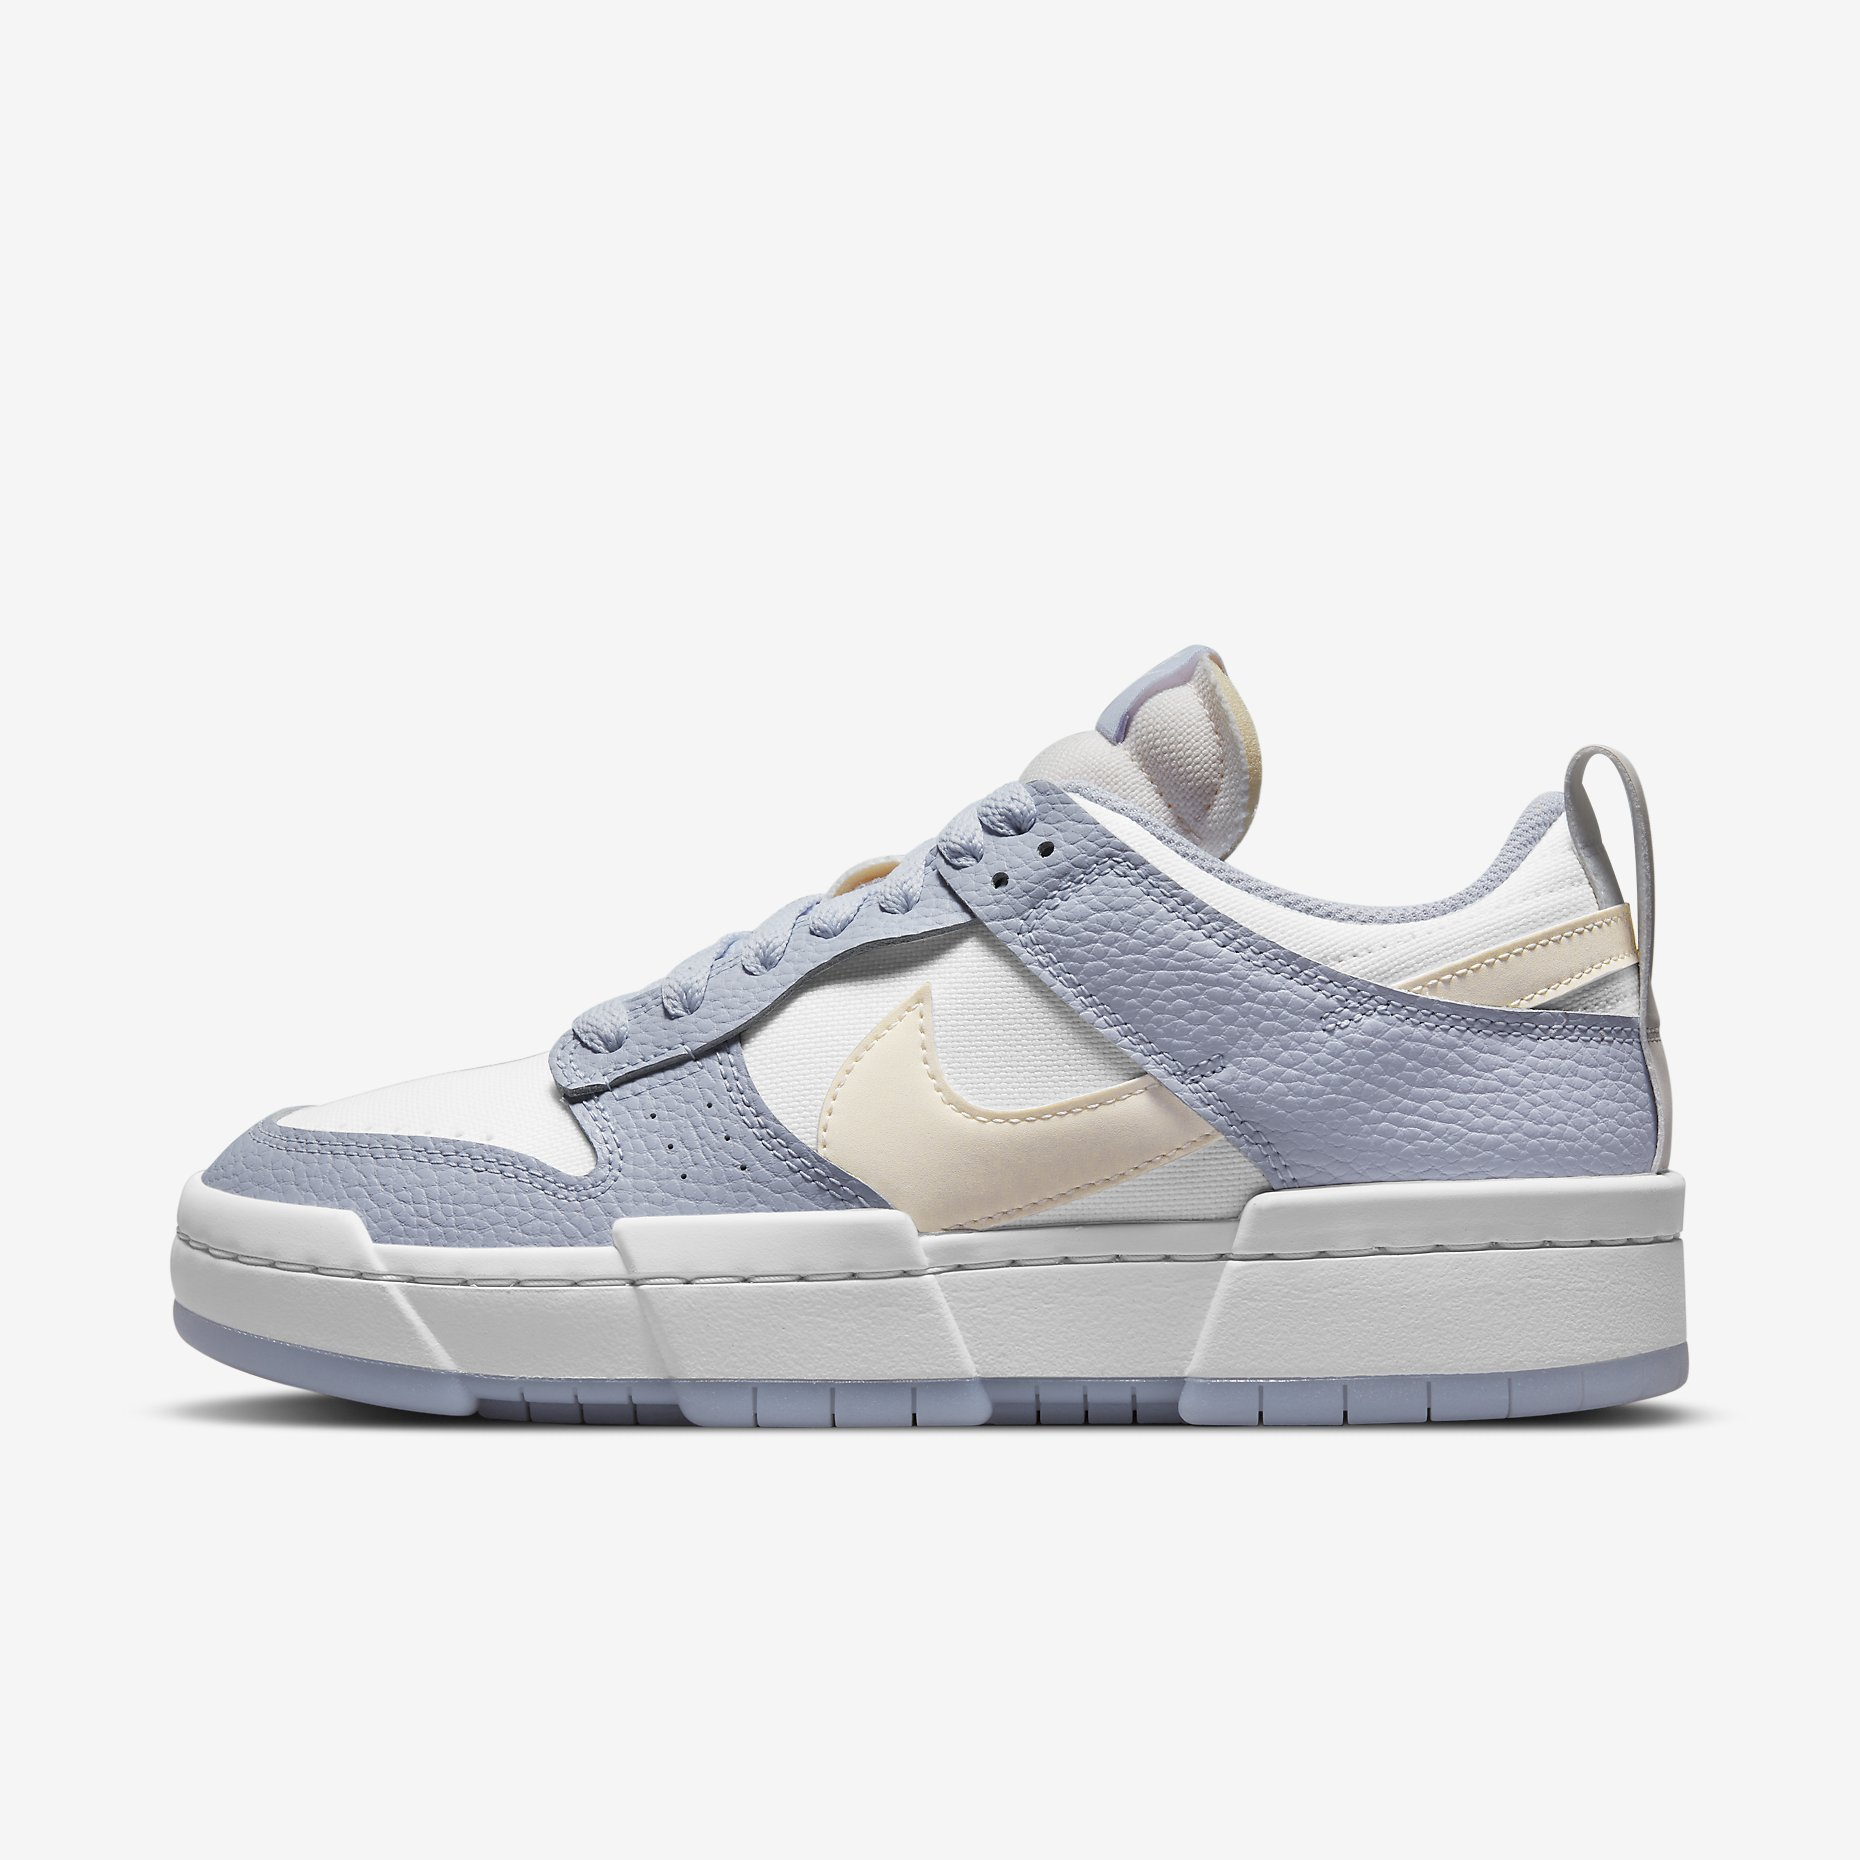 Women's Nike Dunk Low Disrupt ' Summit White Desert Sand Ghost '}